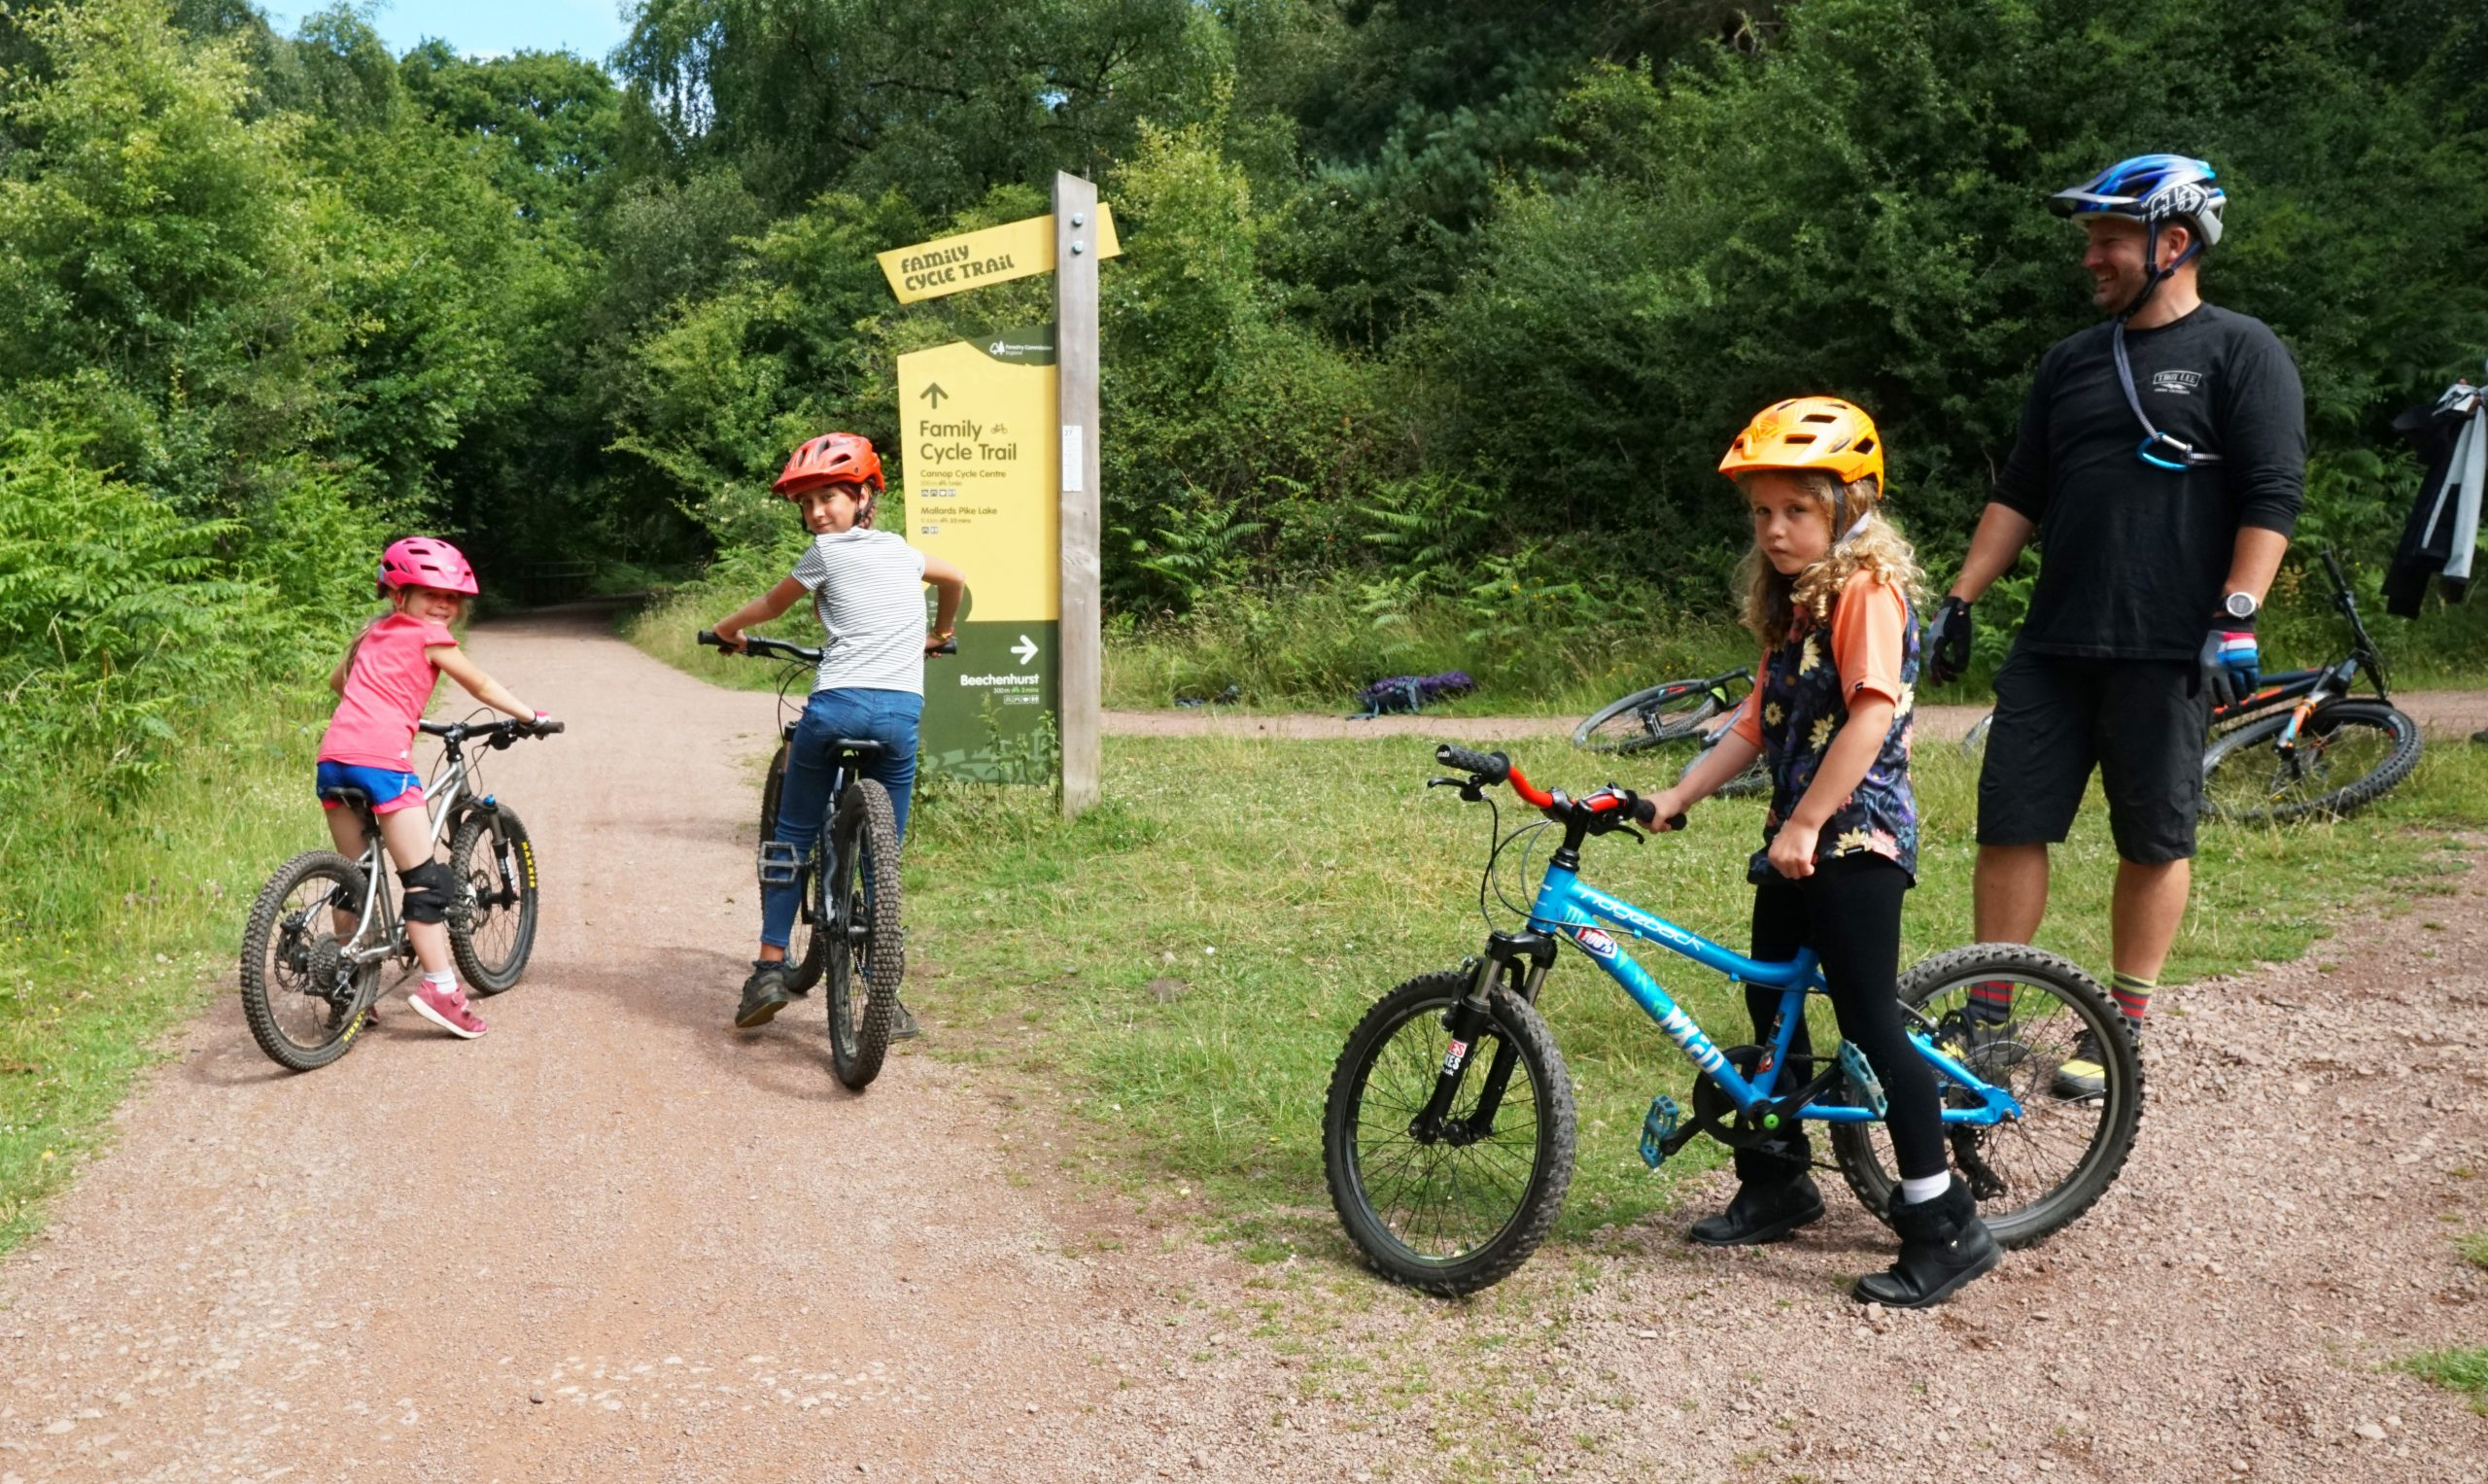 Family guide ride